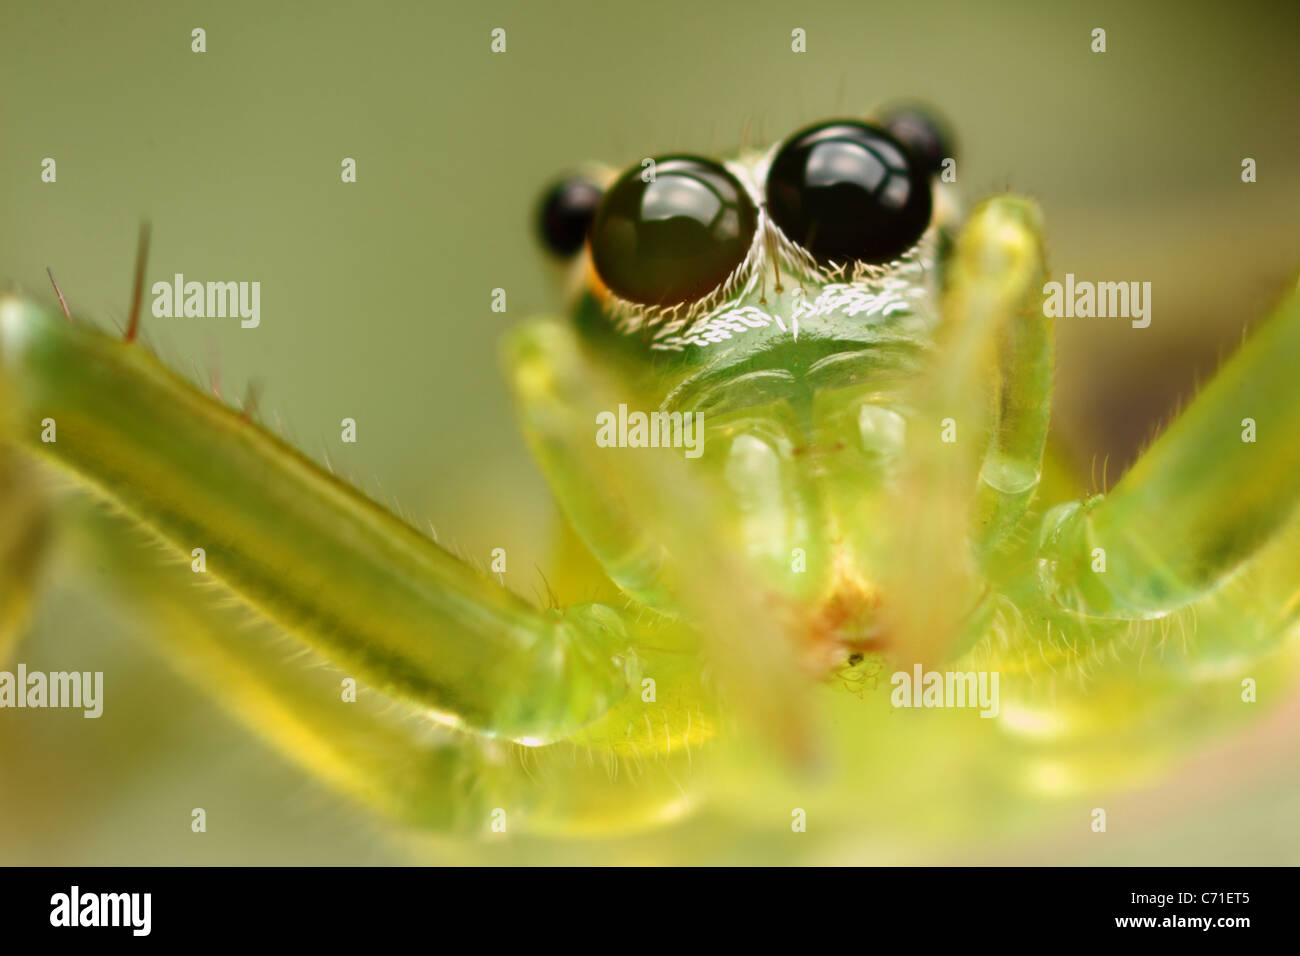 Photo is a green transparent jumper spider at the moment of jump. - Stock Image